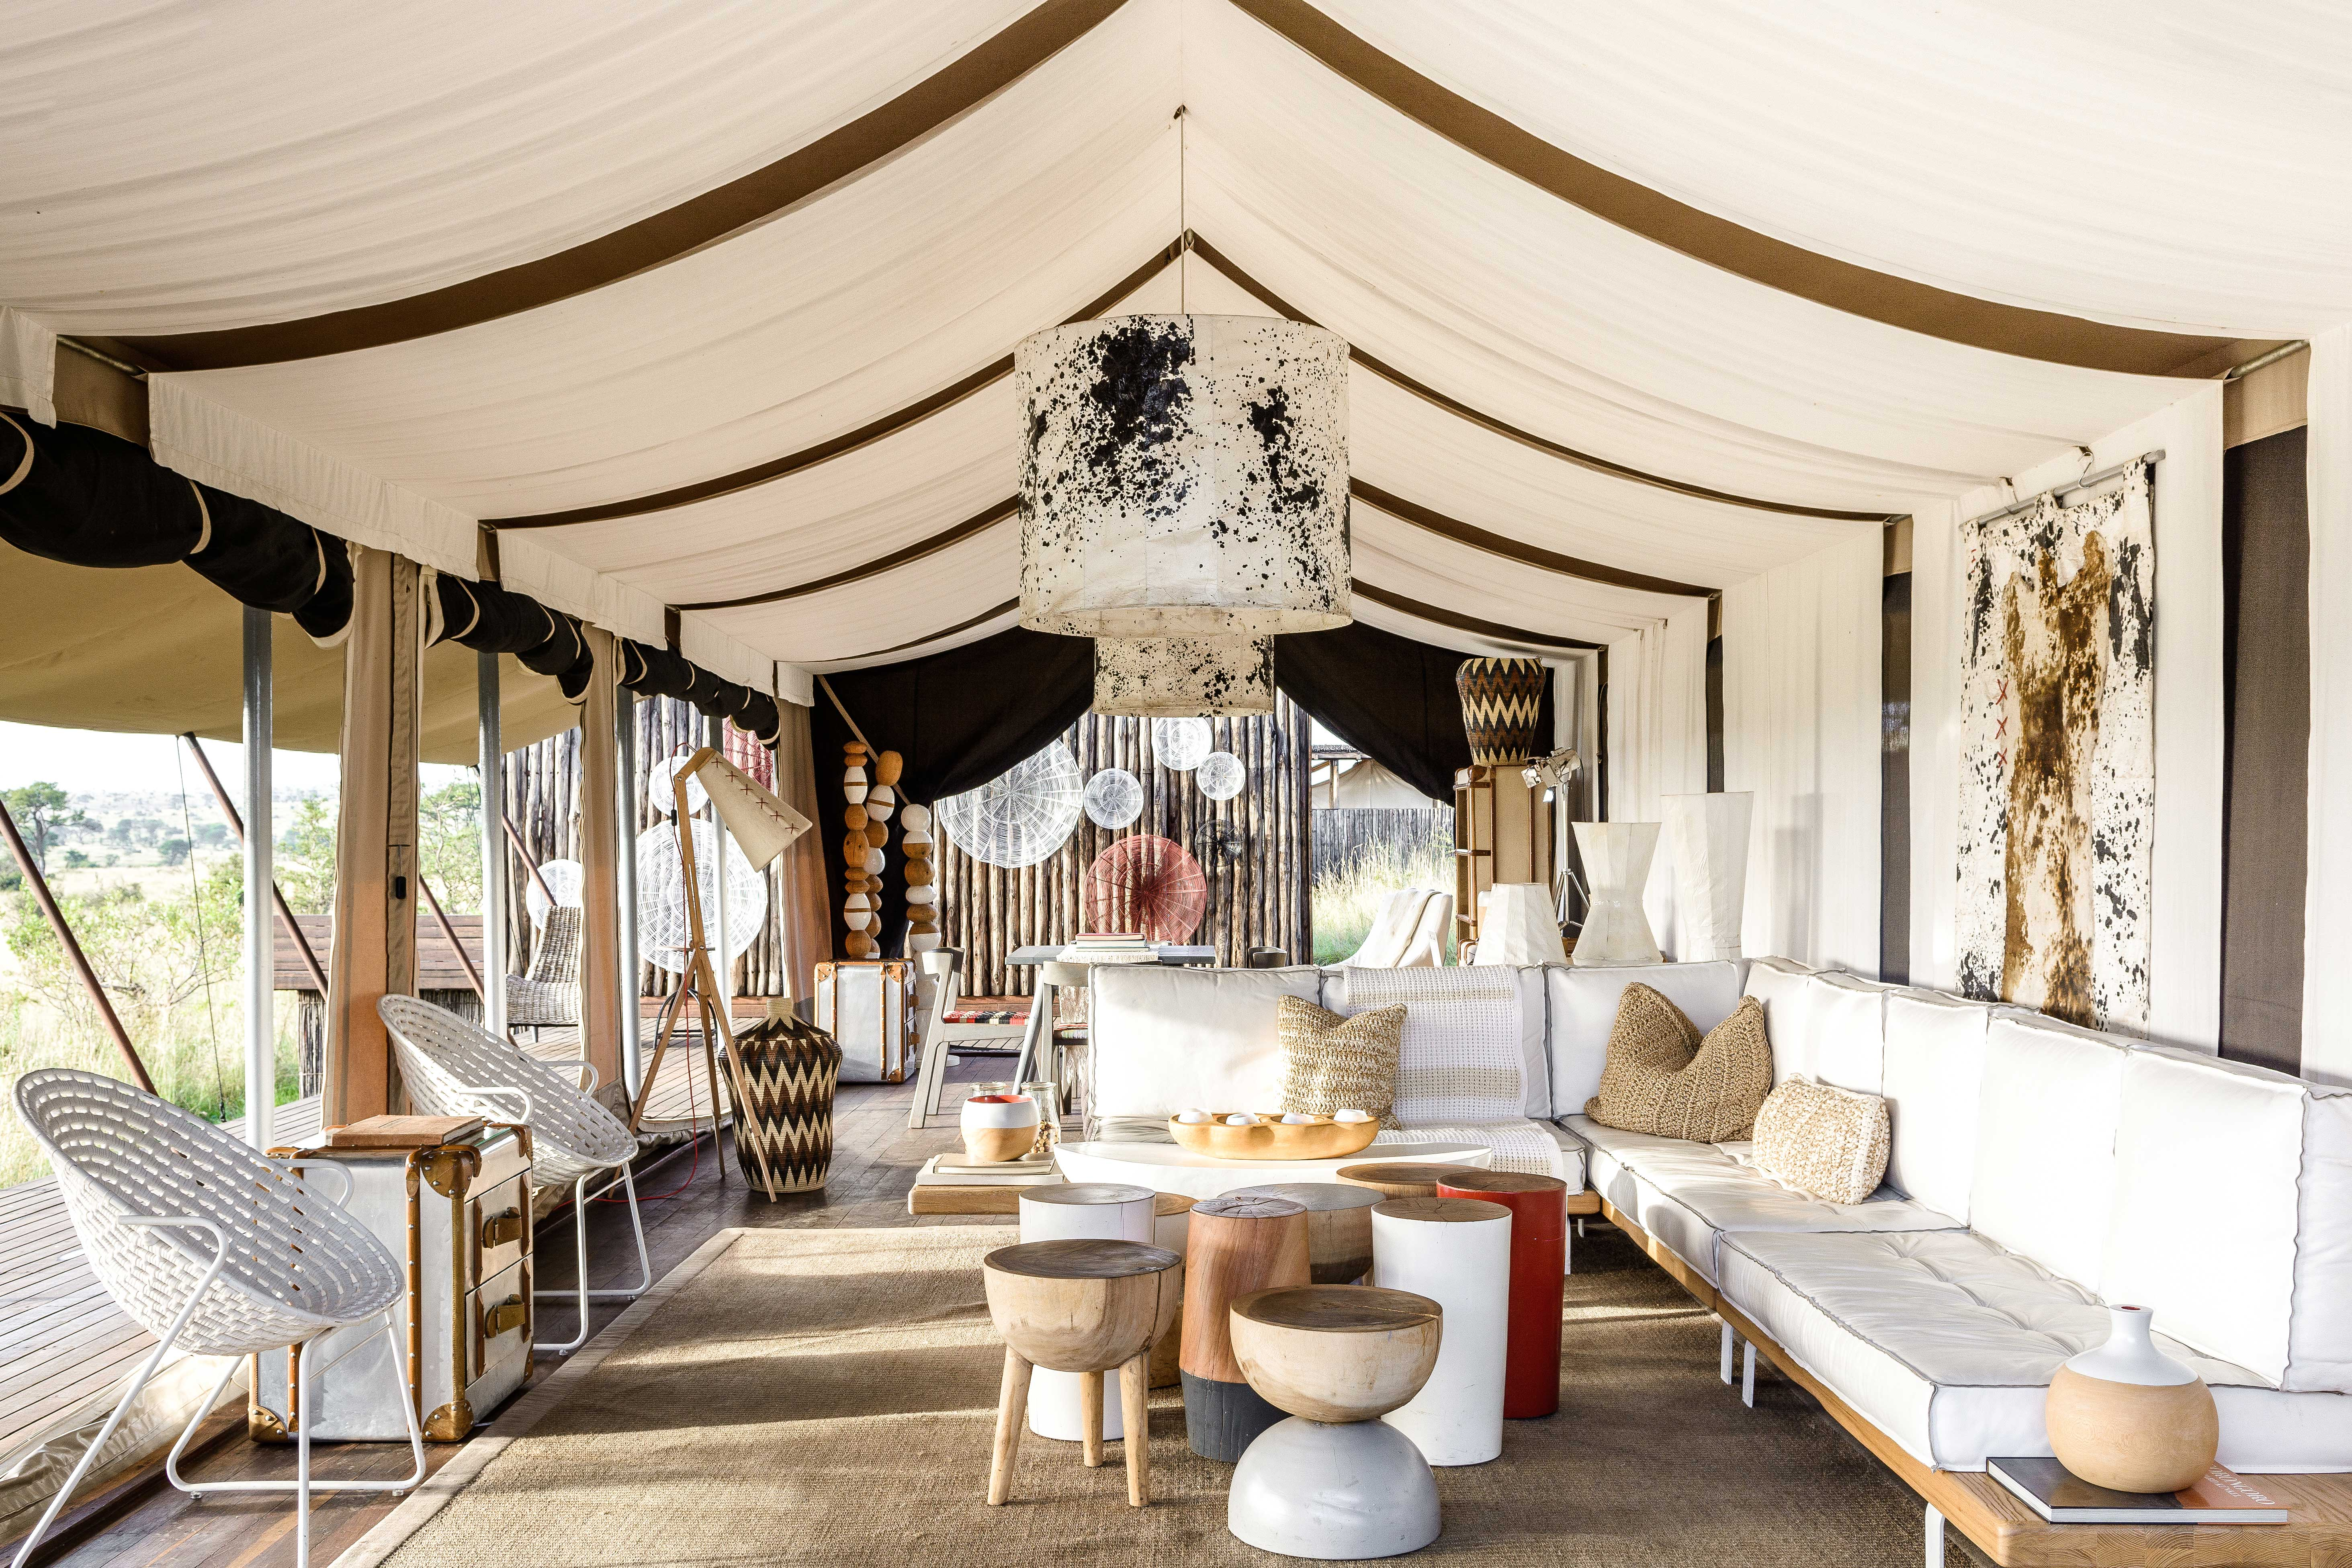 tented camp room